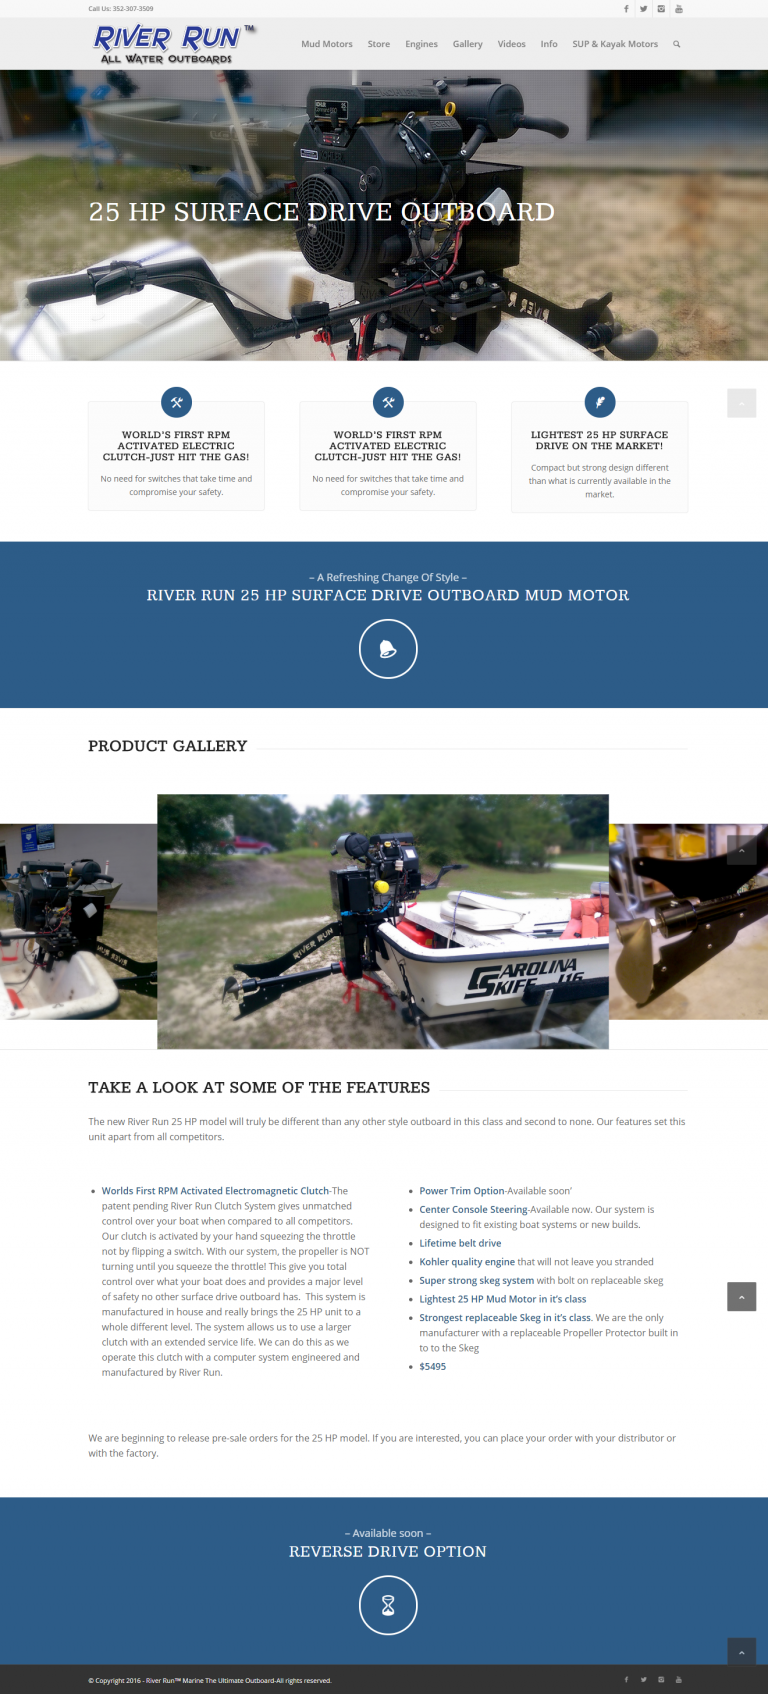 Product Page Redesign Leading to More Sales... hopefully!